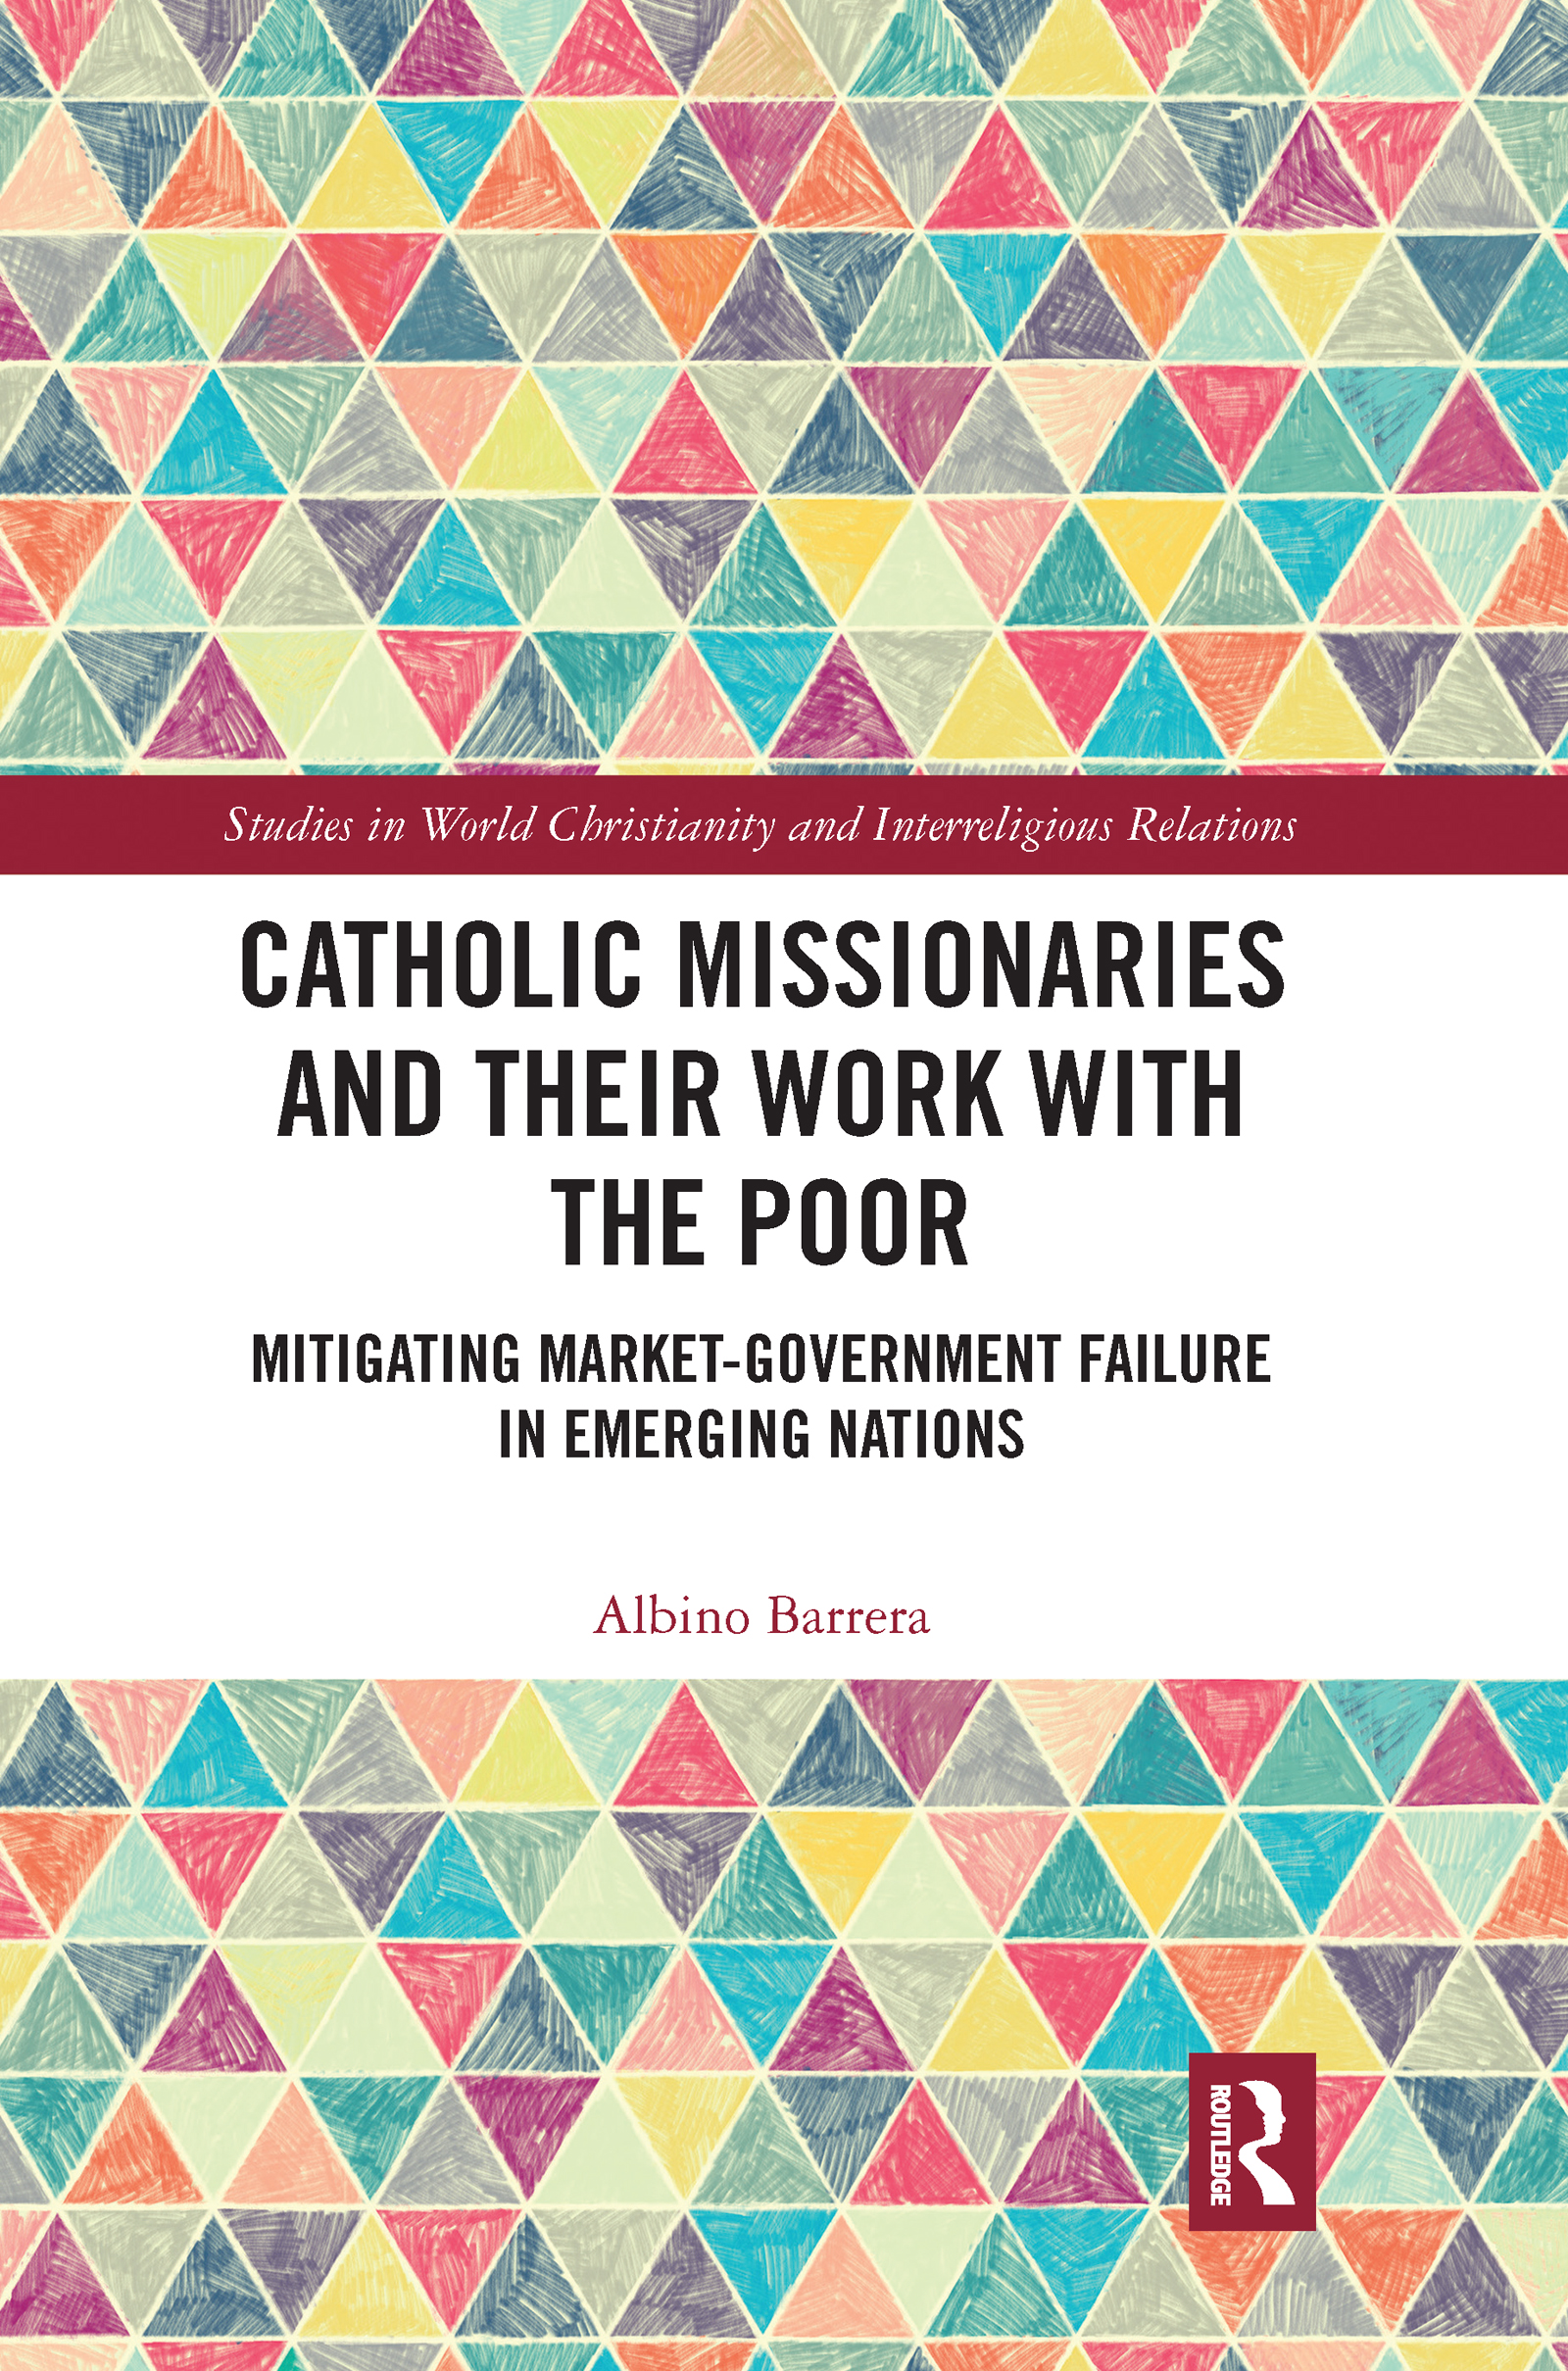 Catholic Missionaries and Their Work with the Poor